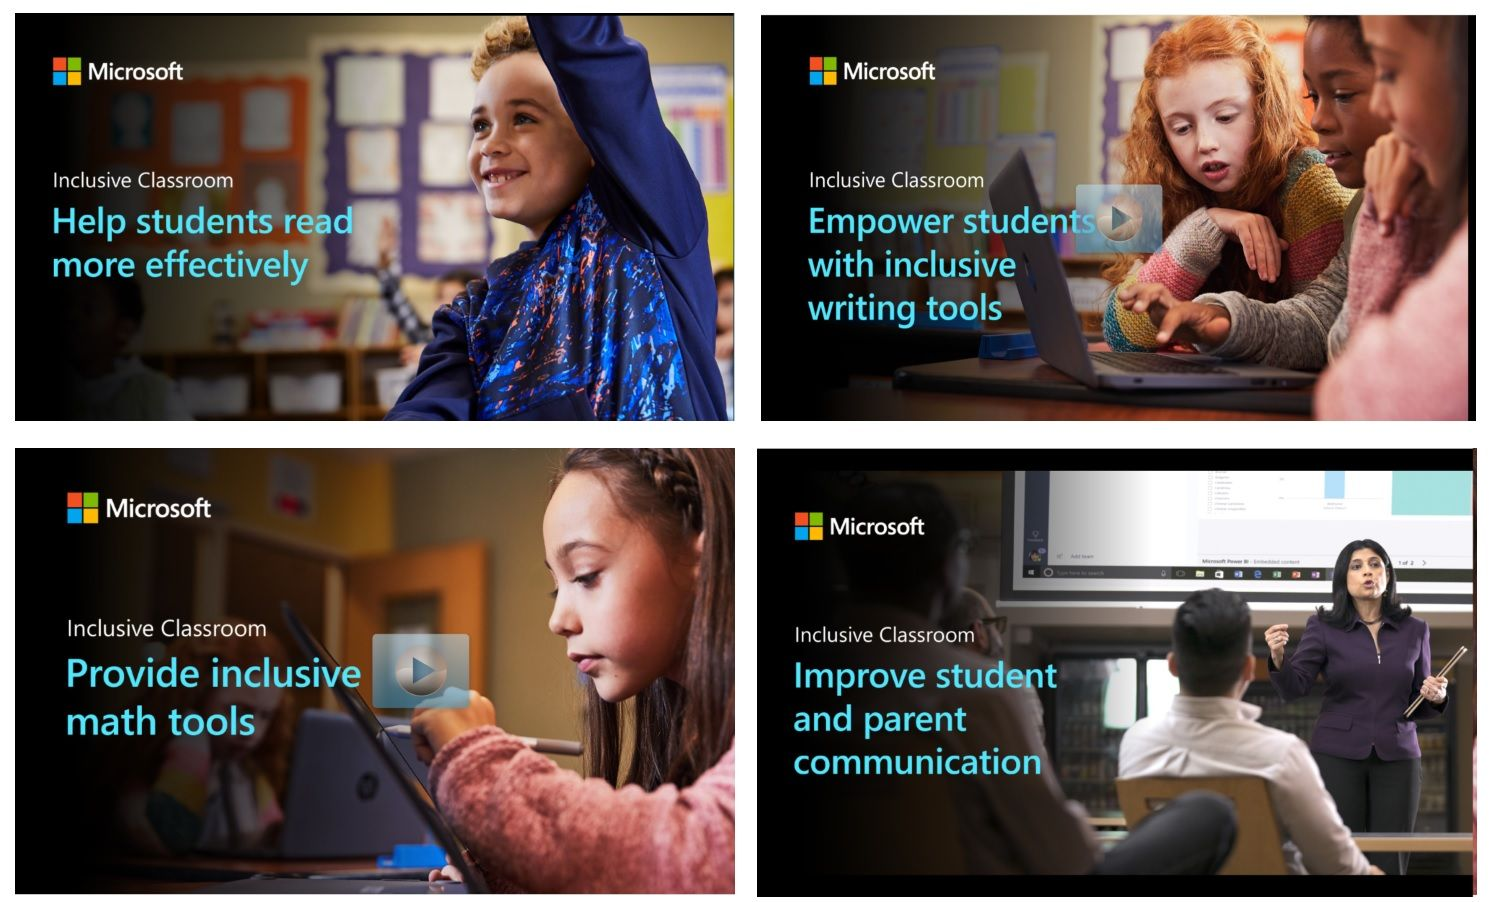 New Microsoft Learning Tools teacher training resources for reading, writing, math and communication